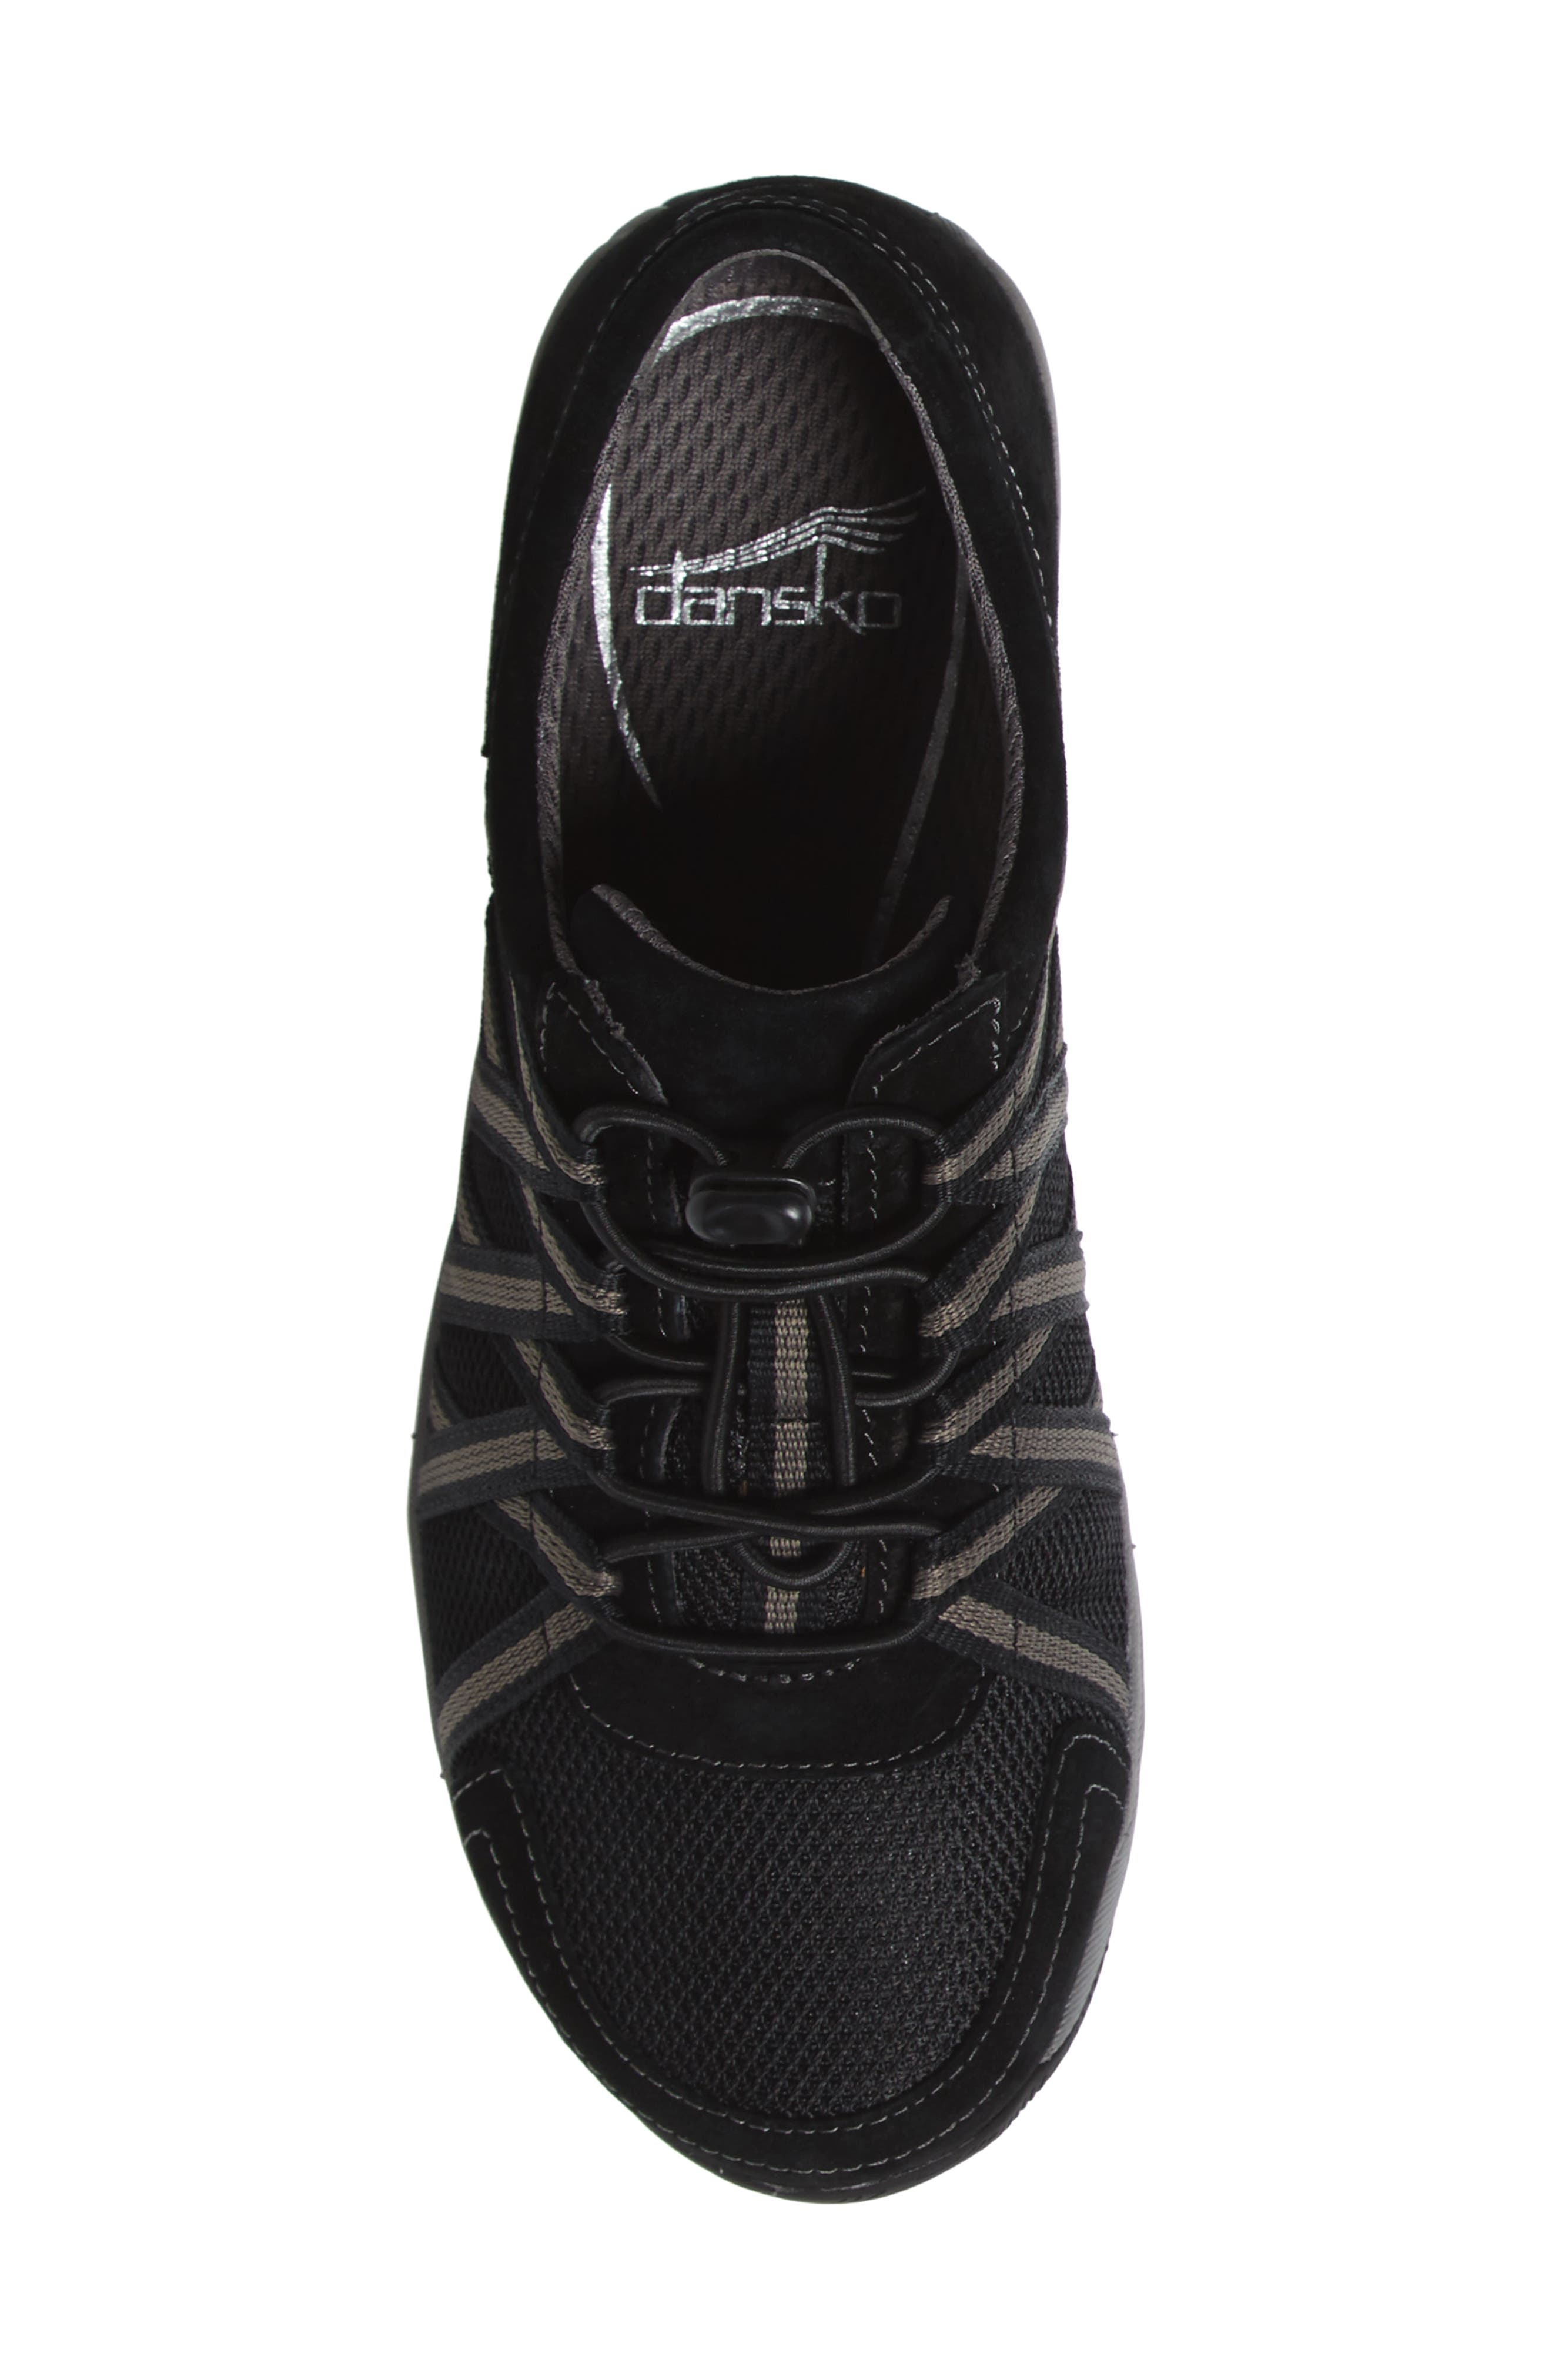 Halifax Collection Honor Sneaker,                             Alternate thumbnail 5, color,                             BLACK/ BLACK SUEDE